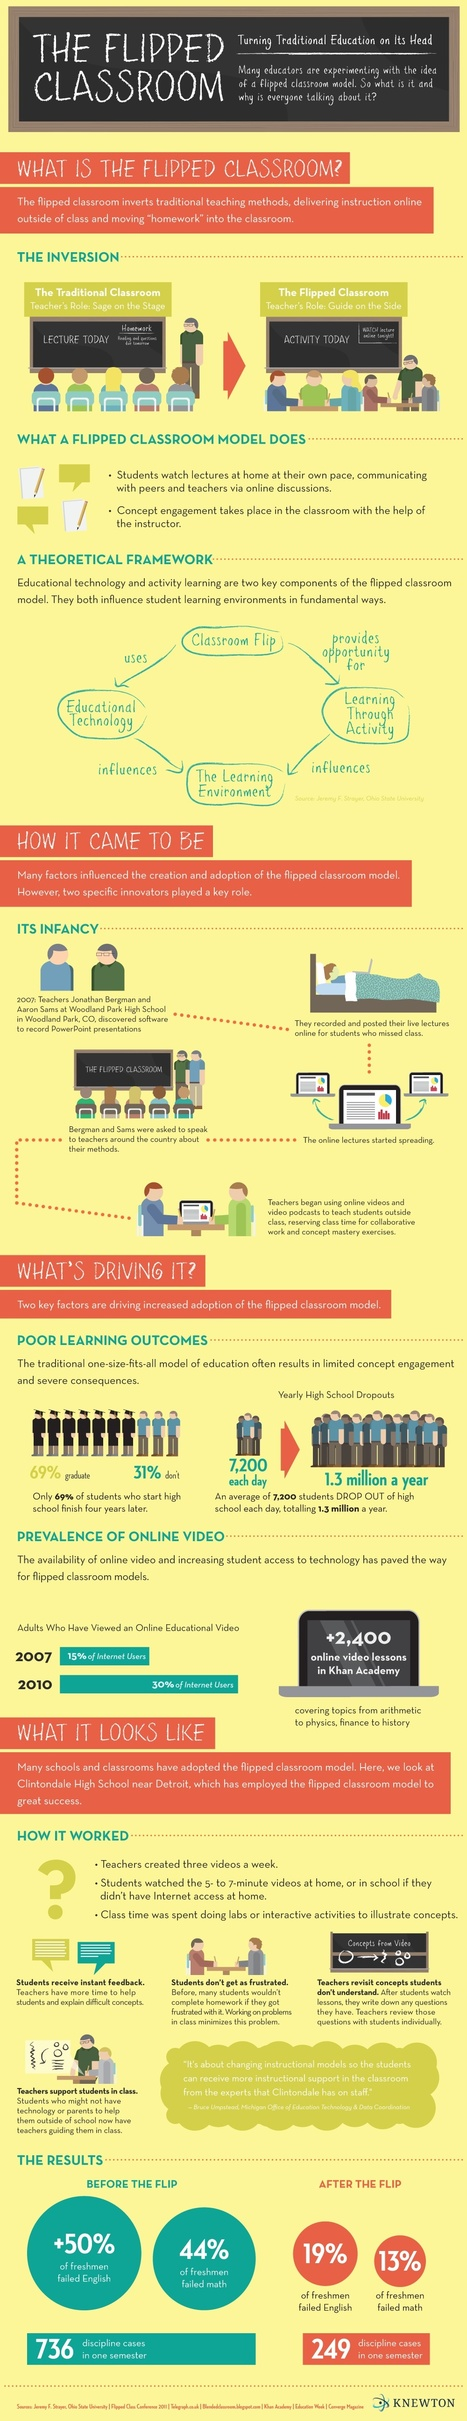 The Flipped Classroom: Turning the Traditional Classroom on its Head | Startup Ideas | Scoop.it